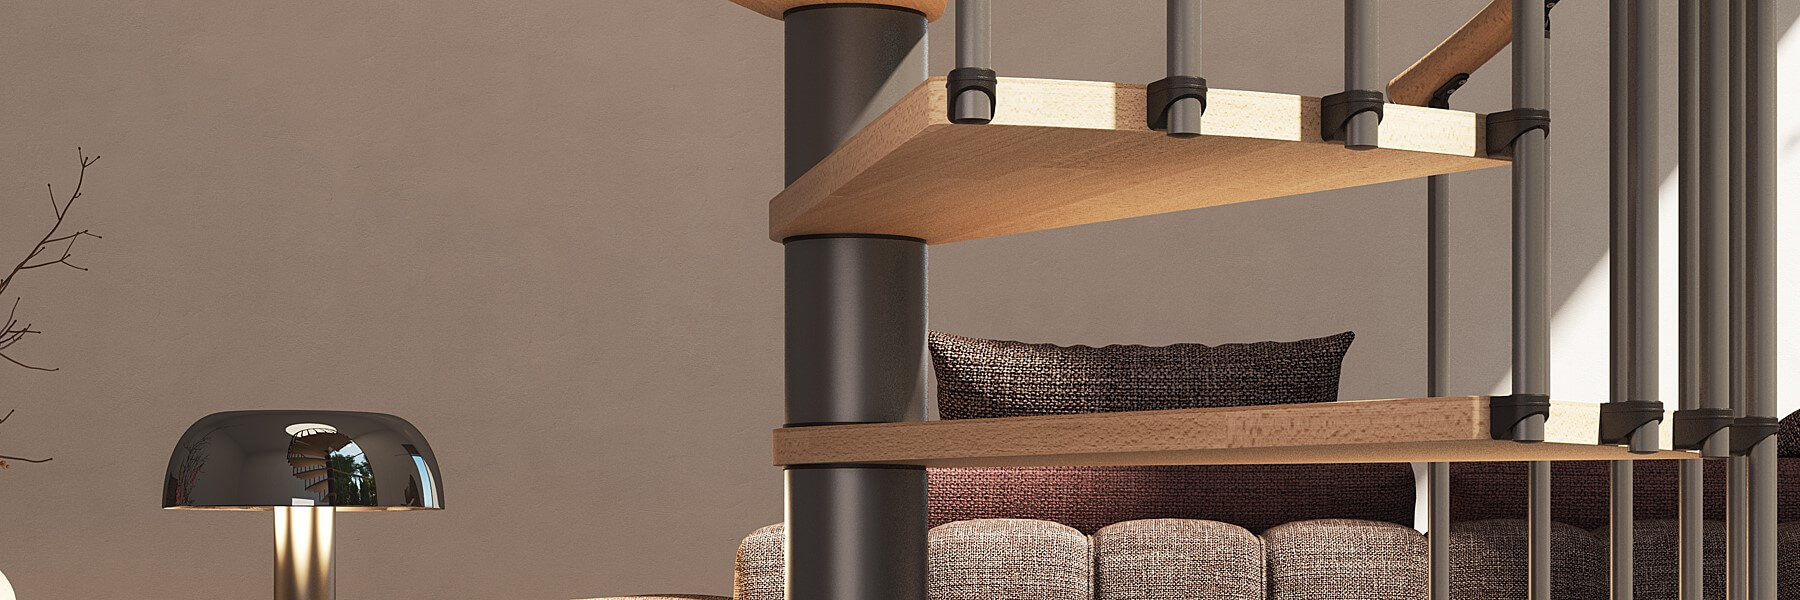 Spiral Stairs Direct Uk Spiral Staircase Kits Store Buy Online